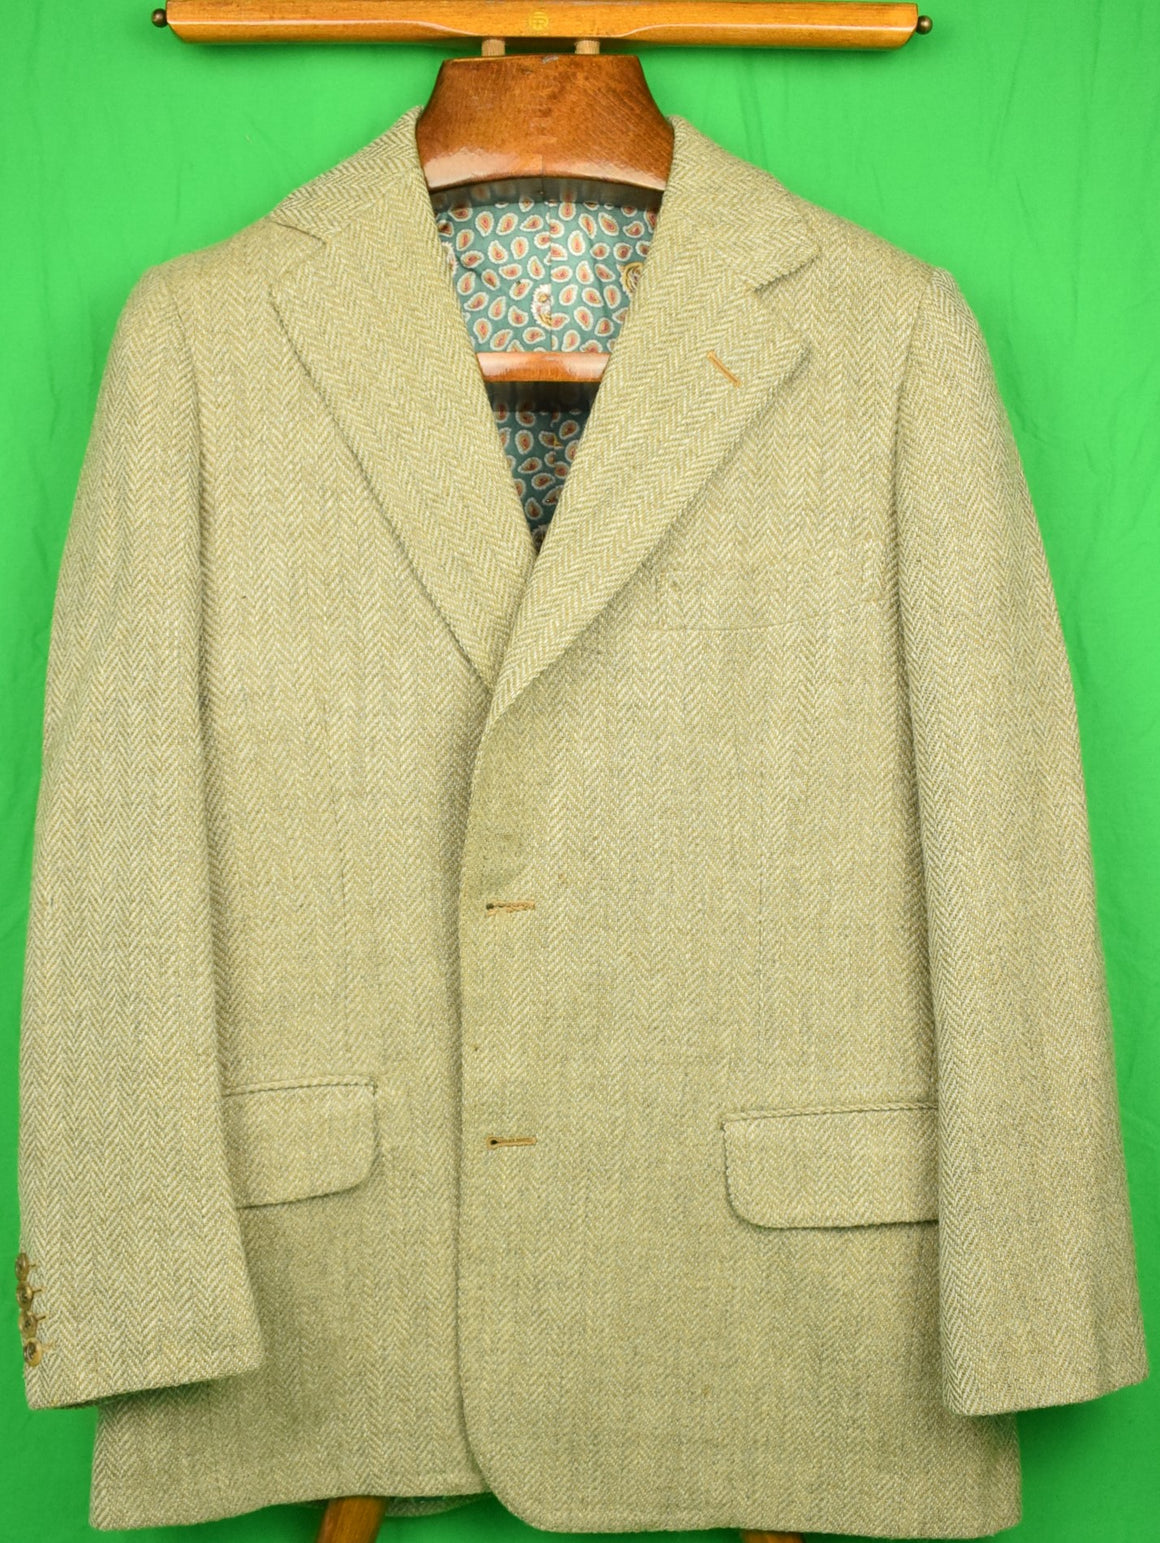 J Press Silk/ Wool Herringbone c1974 Sport Jacket w/ Paisley/ Tiger Head Lining Sz: 42R